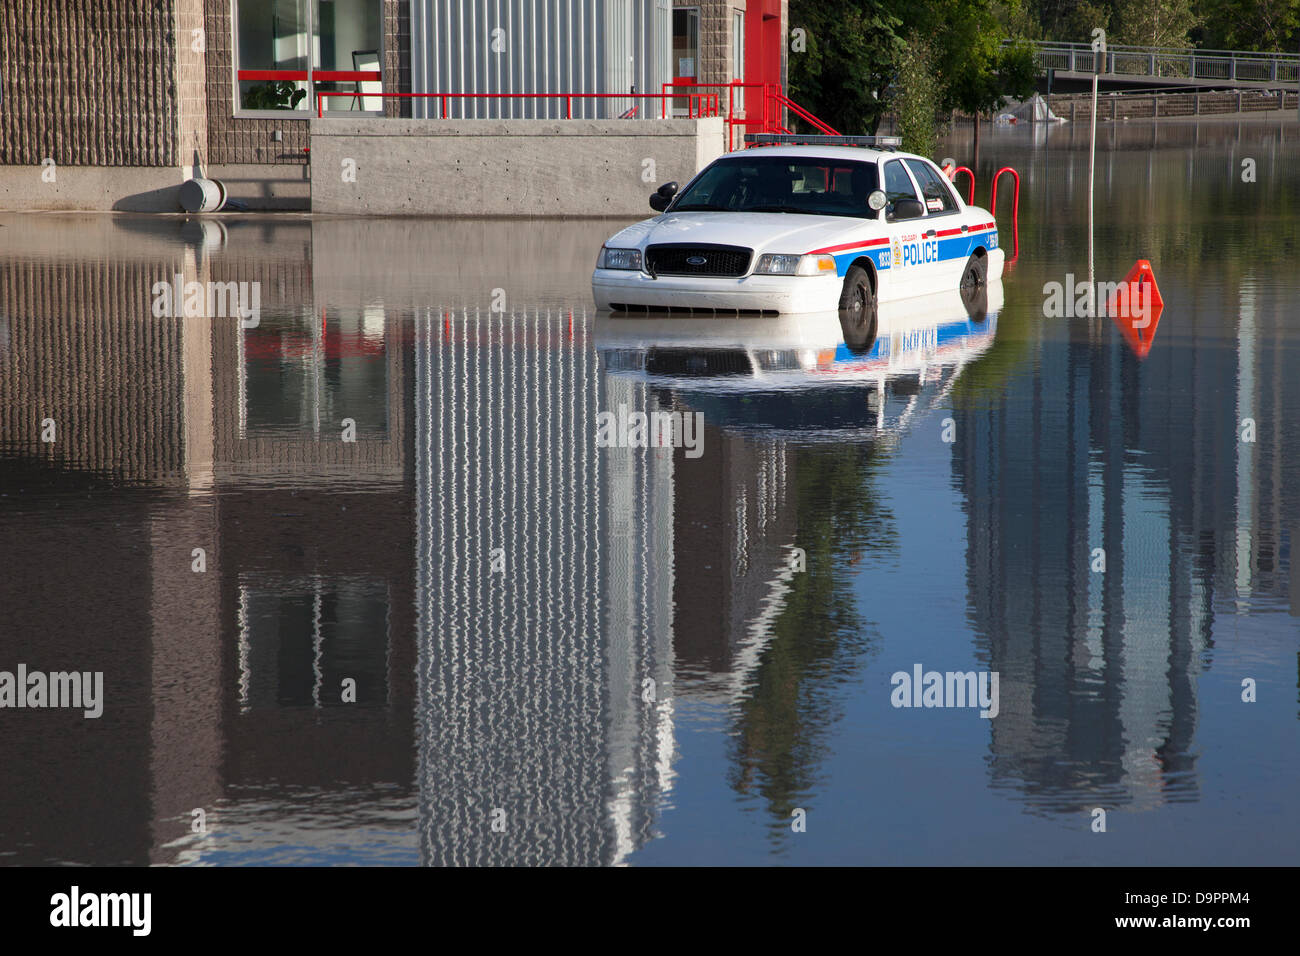 Saturday, June 22, 2013. A police car trapped in a parking lot by rapidly rising floodwaters in the Sunnyside neighbourhood Stock Photo